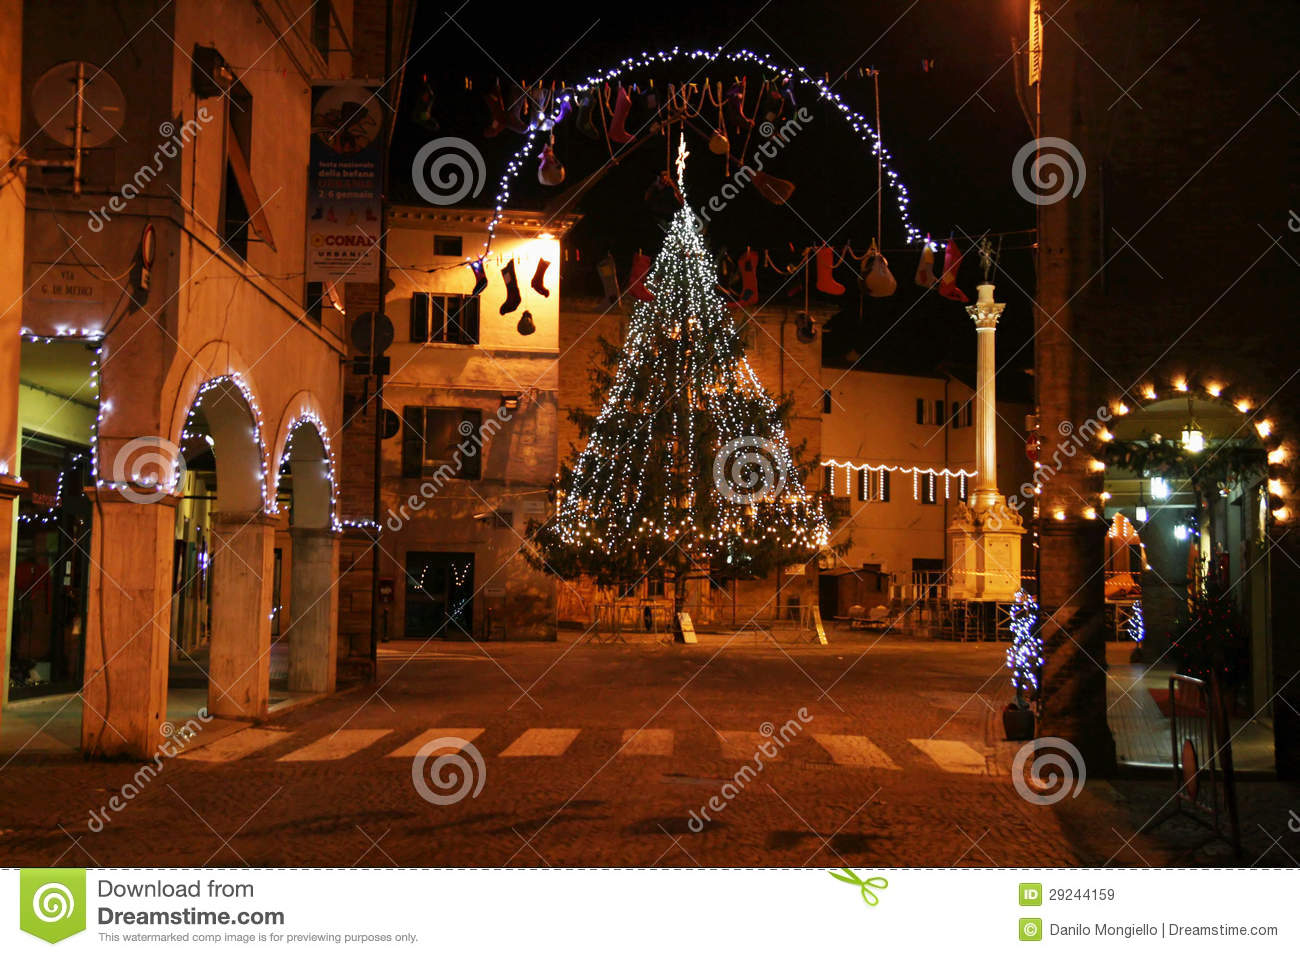 Download Natal no urbania imagem de stock editorial. Imagem de tourism - 29244159